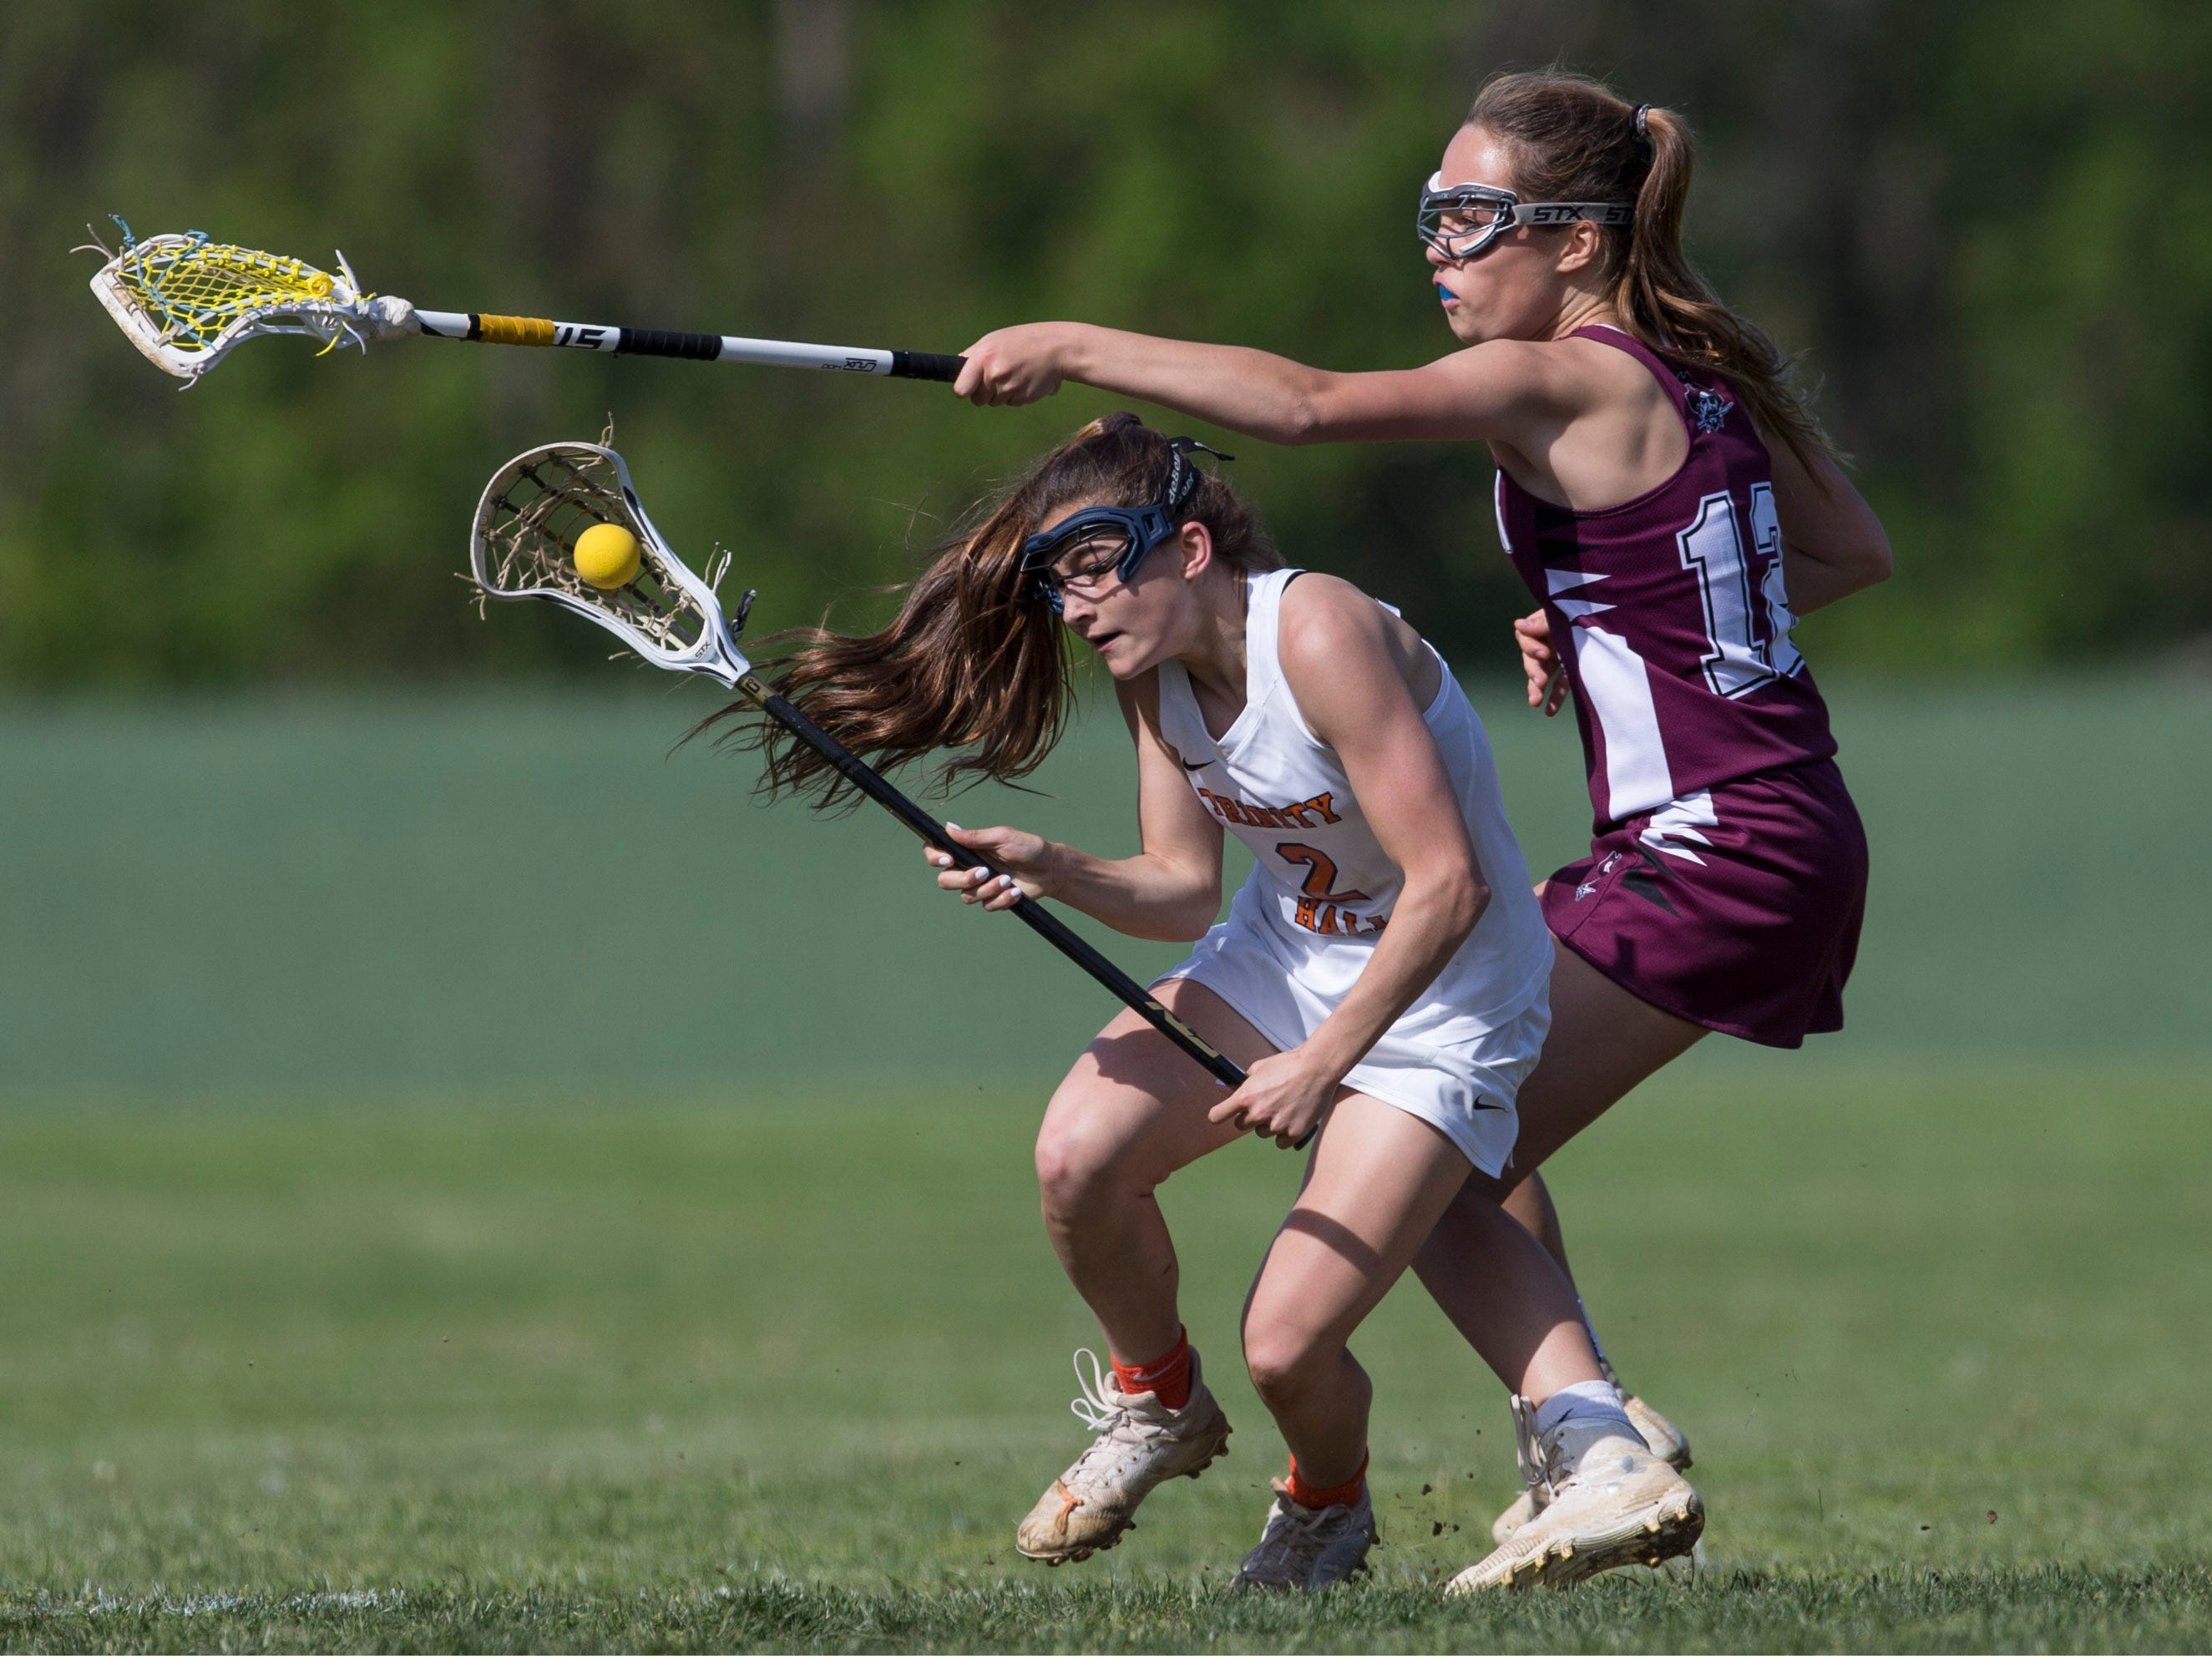 Trinity Hall's Dora Haven gets through the defense of Red Bank Regional's N. Hawthorn. Trinity Hall vs Red Bank Regional lacrosse. Colts Neck, NJTuesday, May 7, 2019